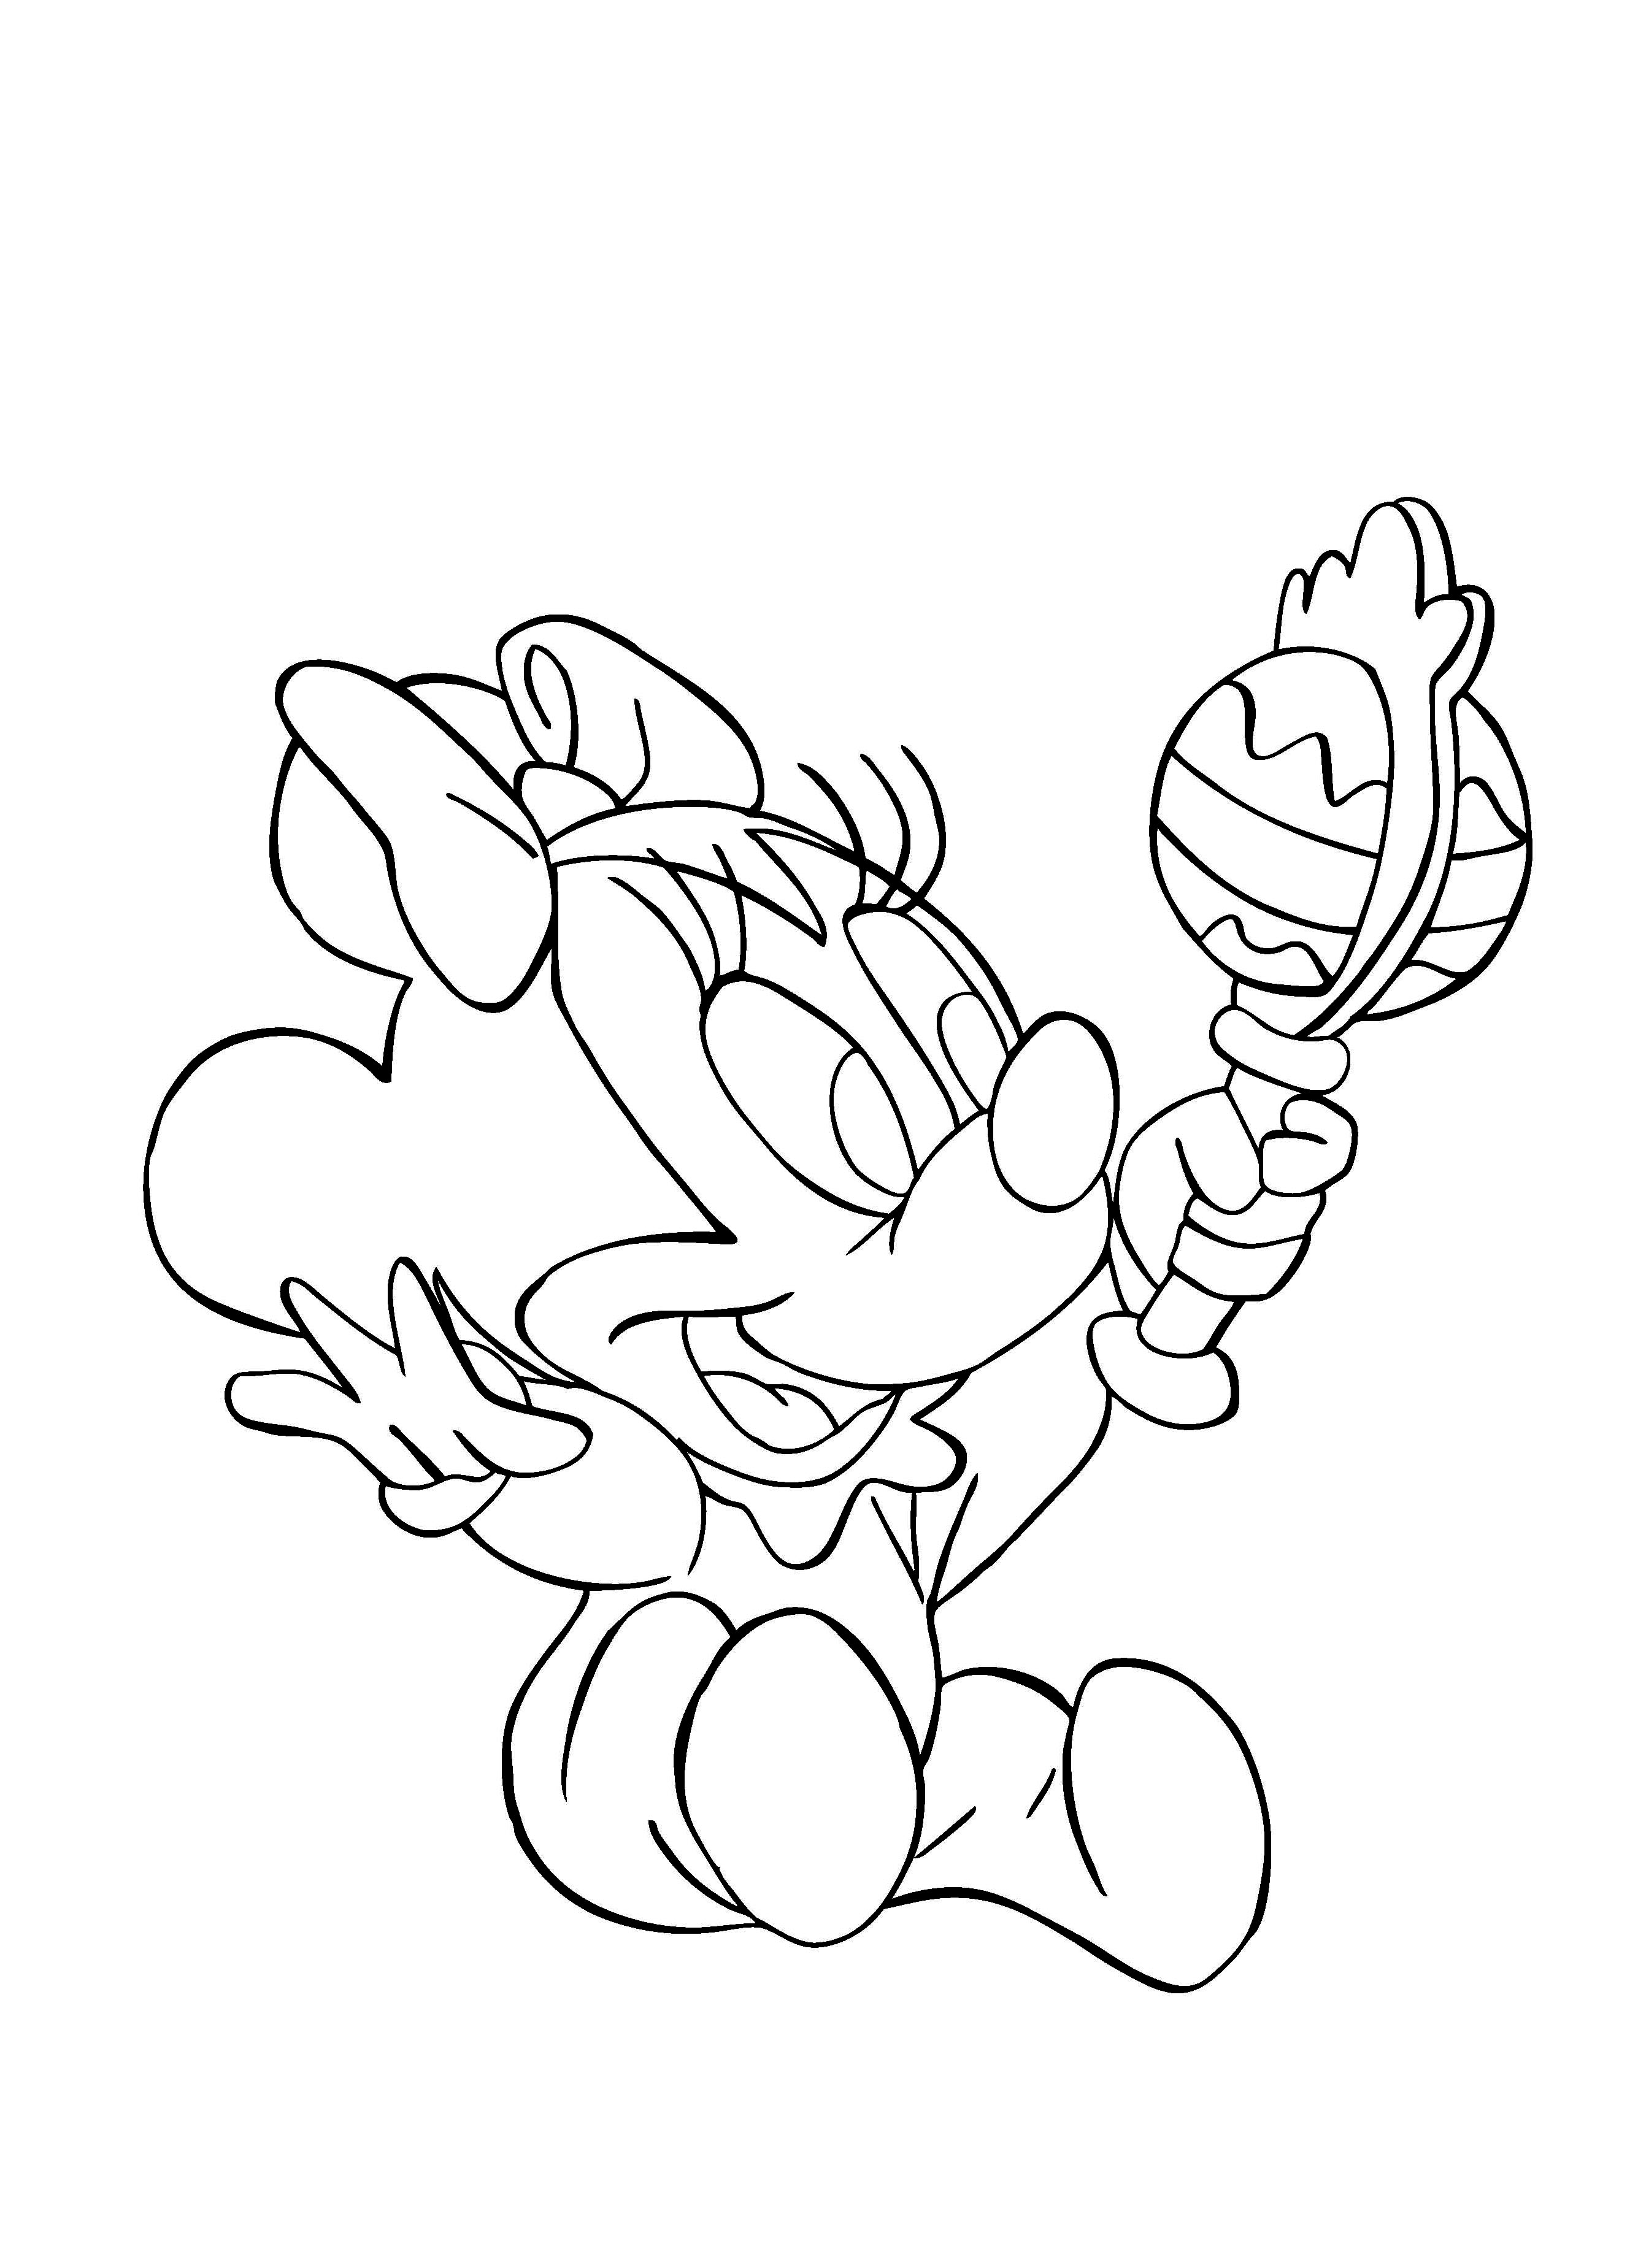 Funny Minnie coloring page for children